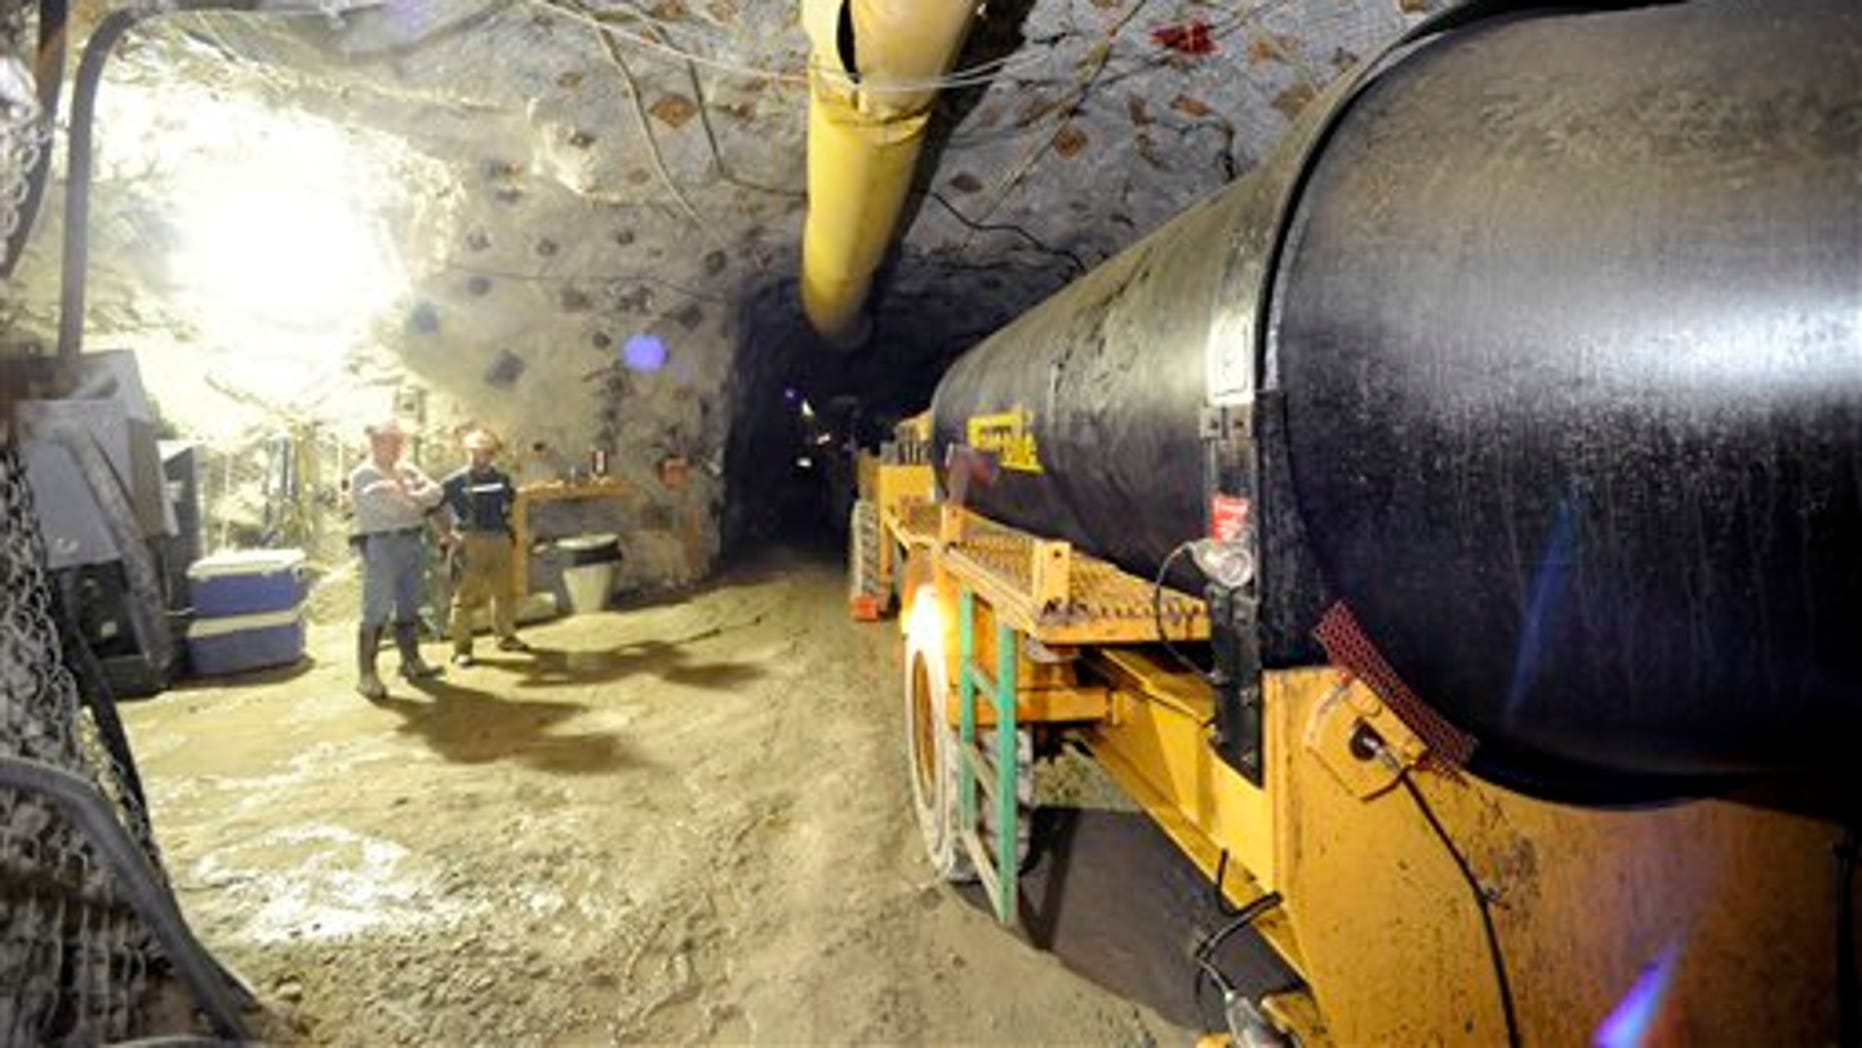 In this Nov. 24, 2010 photo, two mine workers stand inside the Lucky Friday mine in Mullan, Idaho. The roof of the tunnel collapsed on Friday, April 15, 2011, trapping Larry Marek.  Officials have not had contact with him and don't know his condition.(AP/The Spokesman-Review)